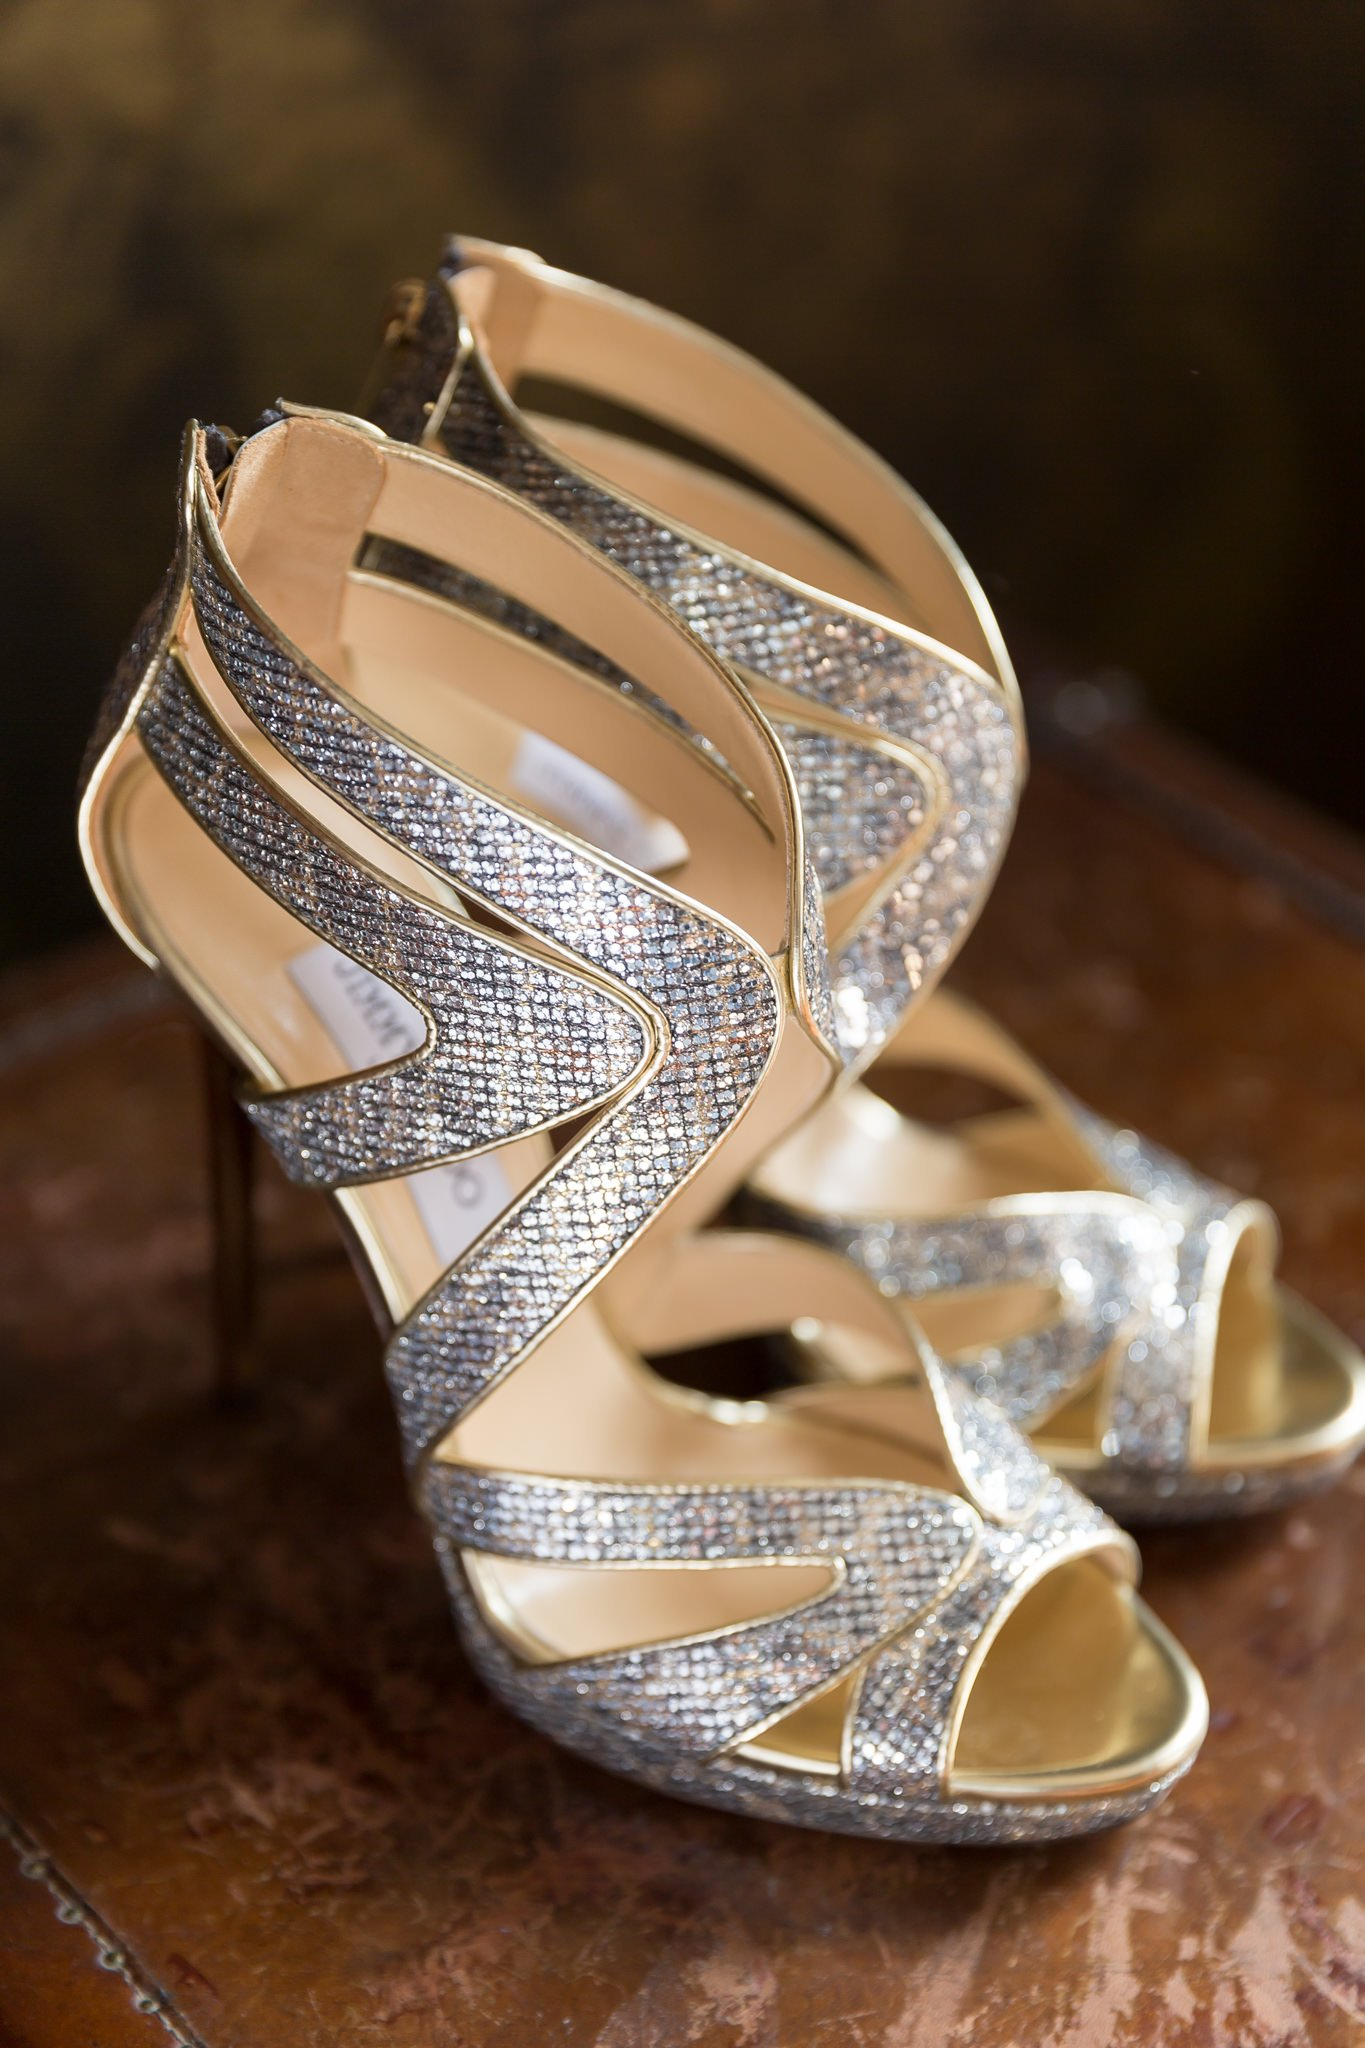 Gold and silver Jimmy Choo wedding shoes